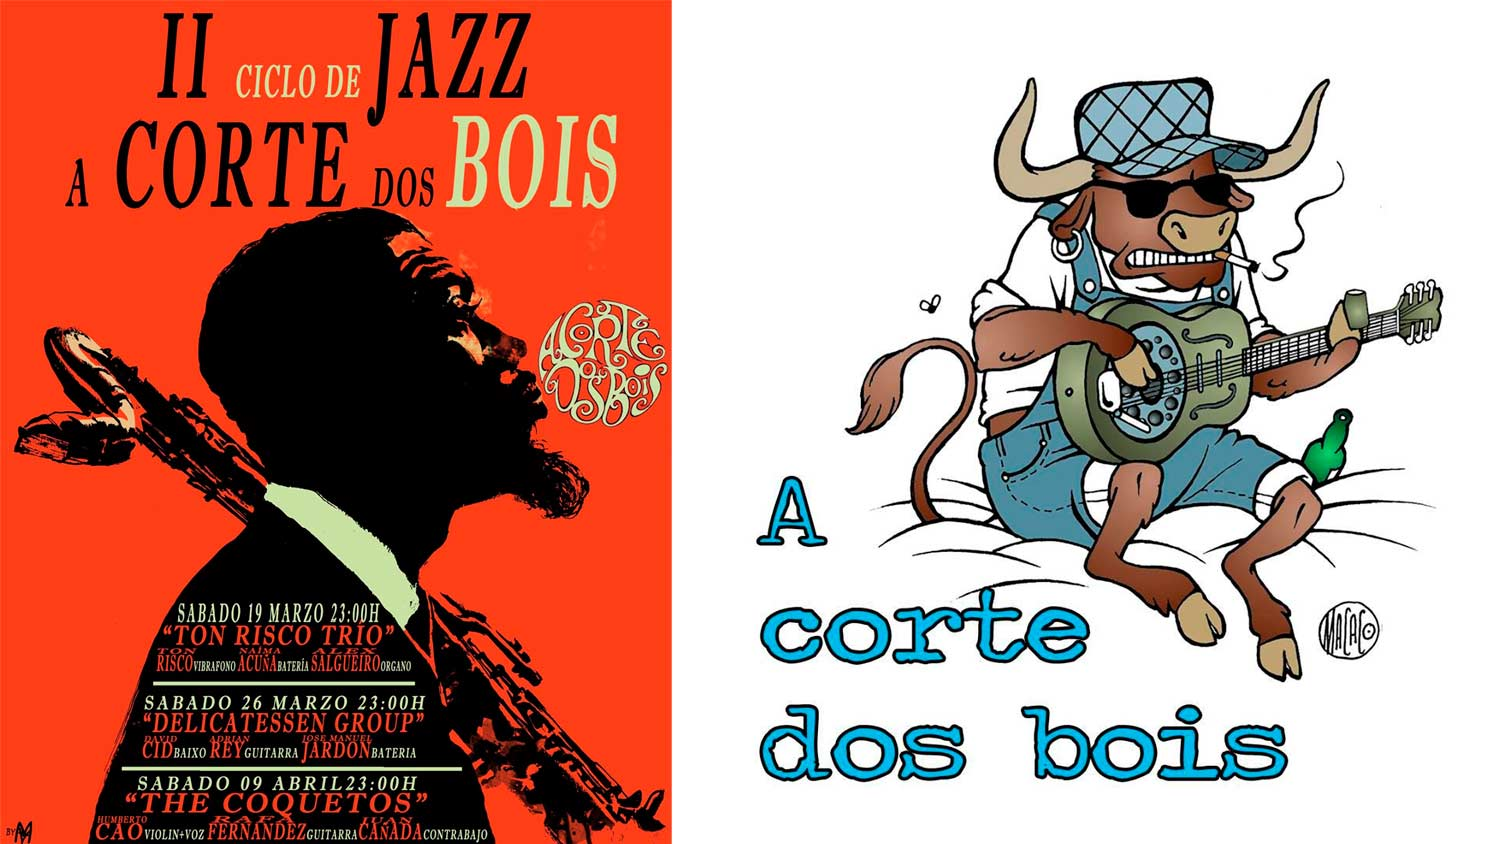 II Ciclo de Jazz en A Corte dos Bois…Galicia is different…